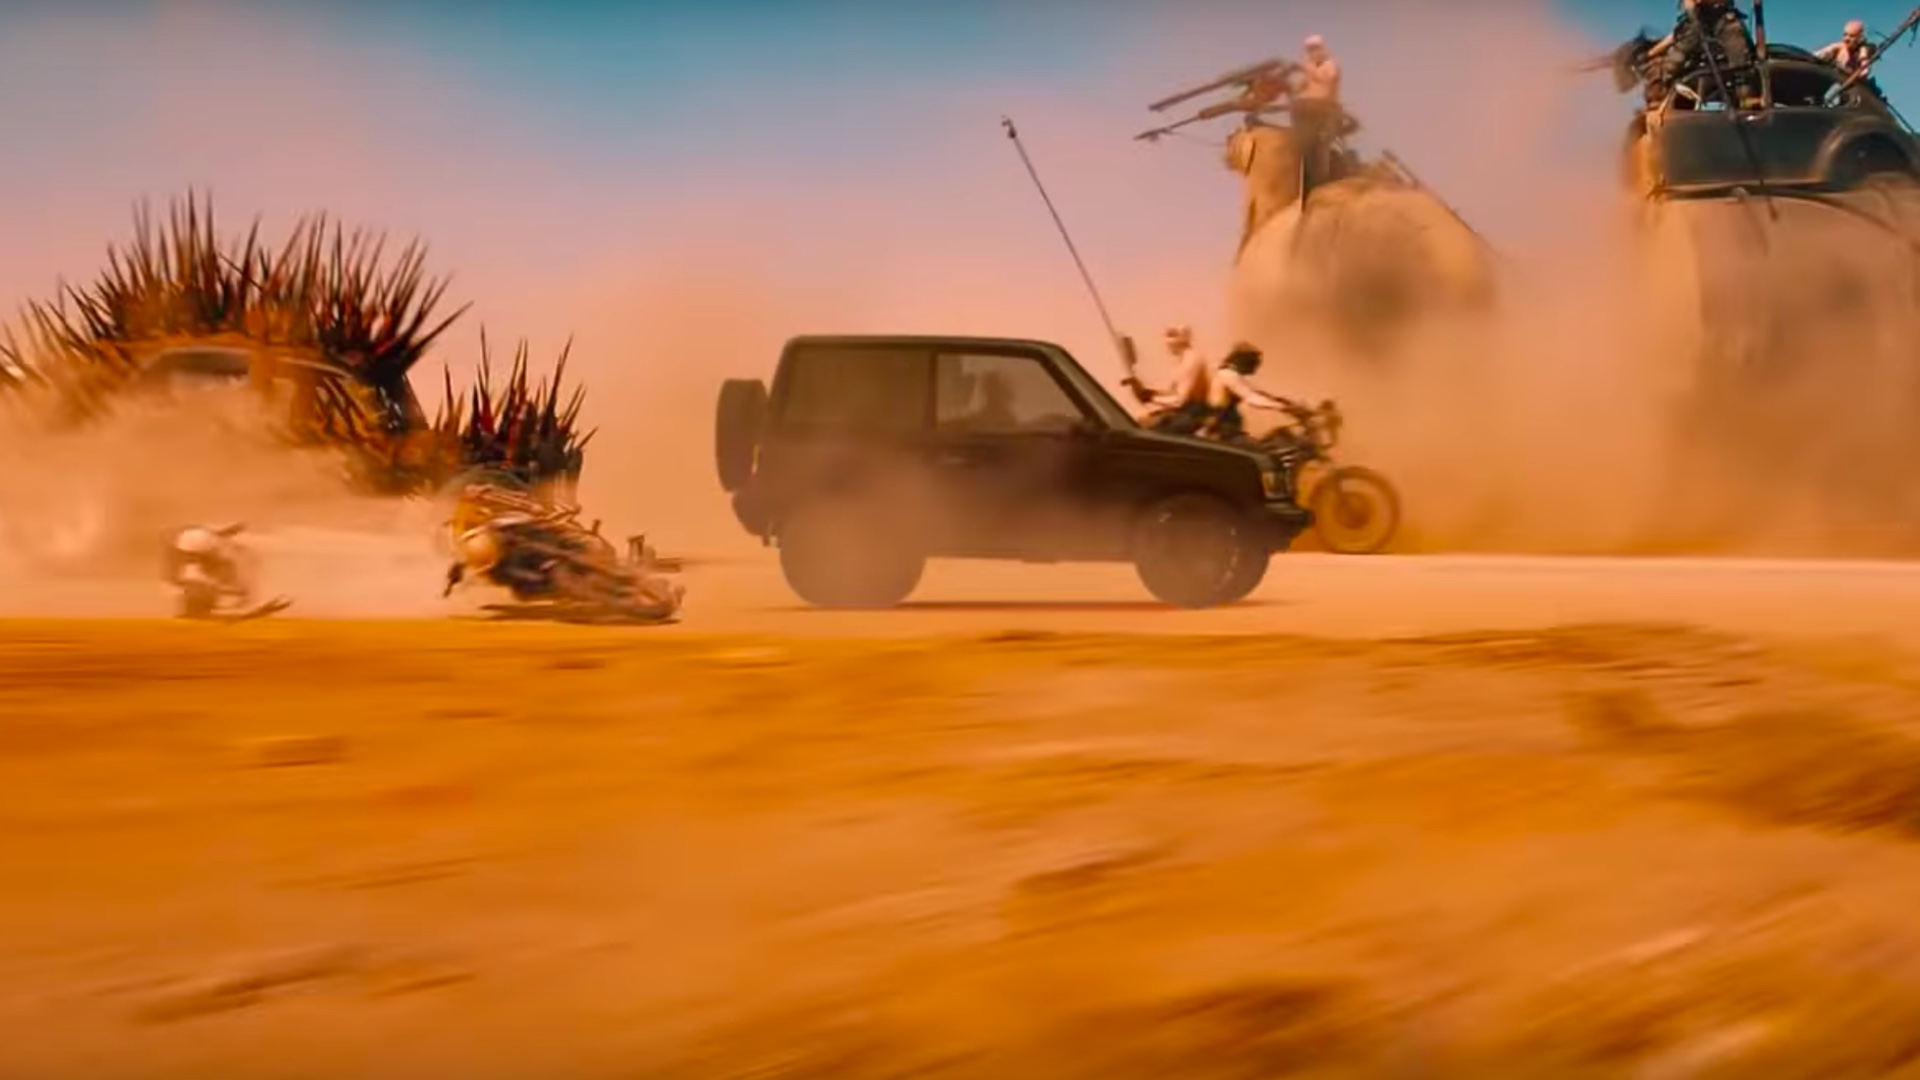 hight resolution of this has got to be the greatest video ad ever created for a used car it was created by visual effects artist eugene romanovsky and he made it to help sell